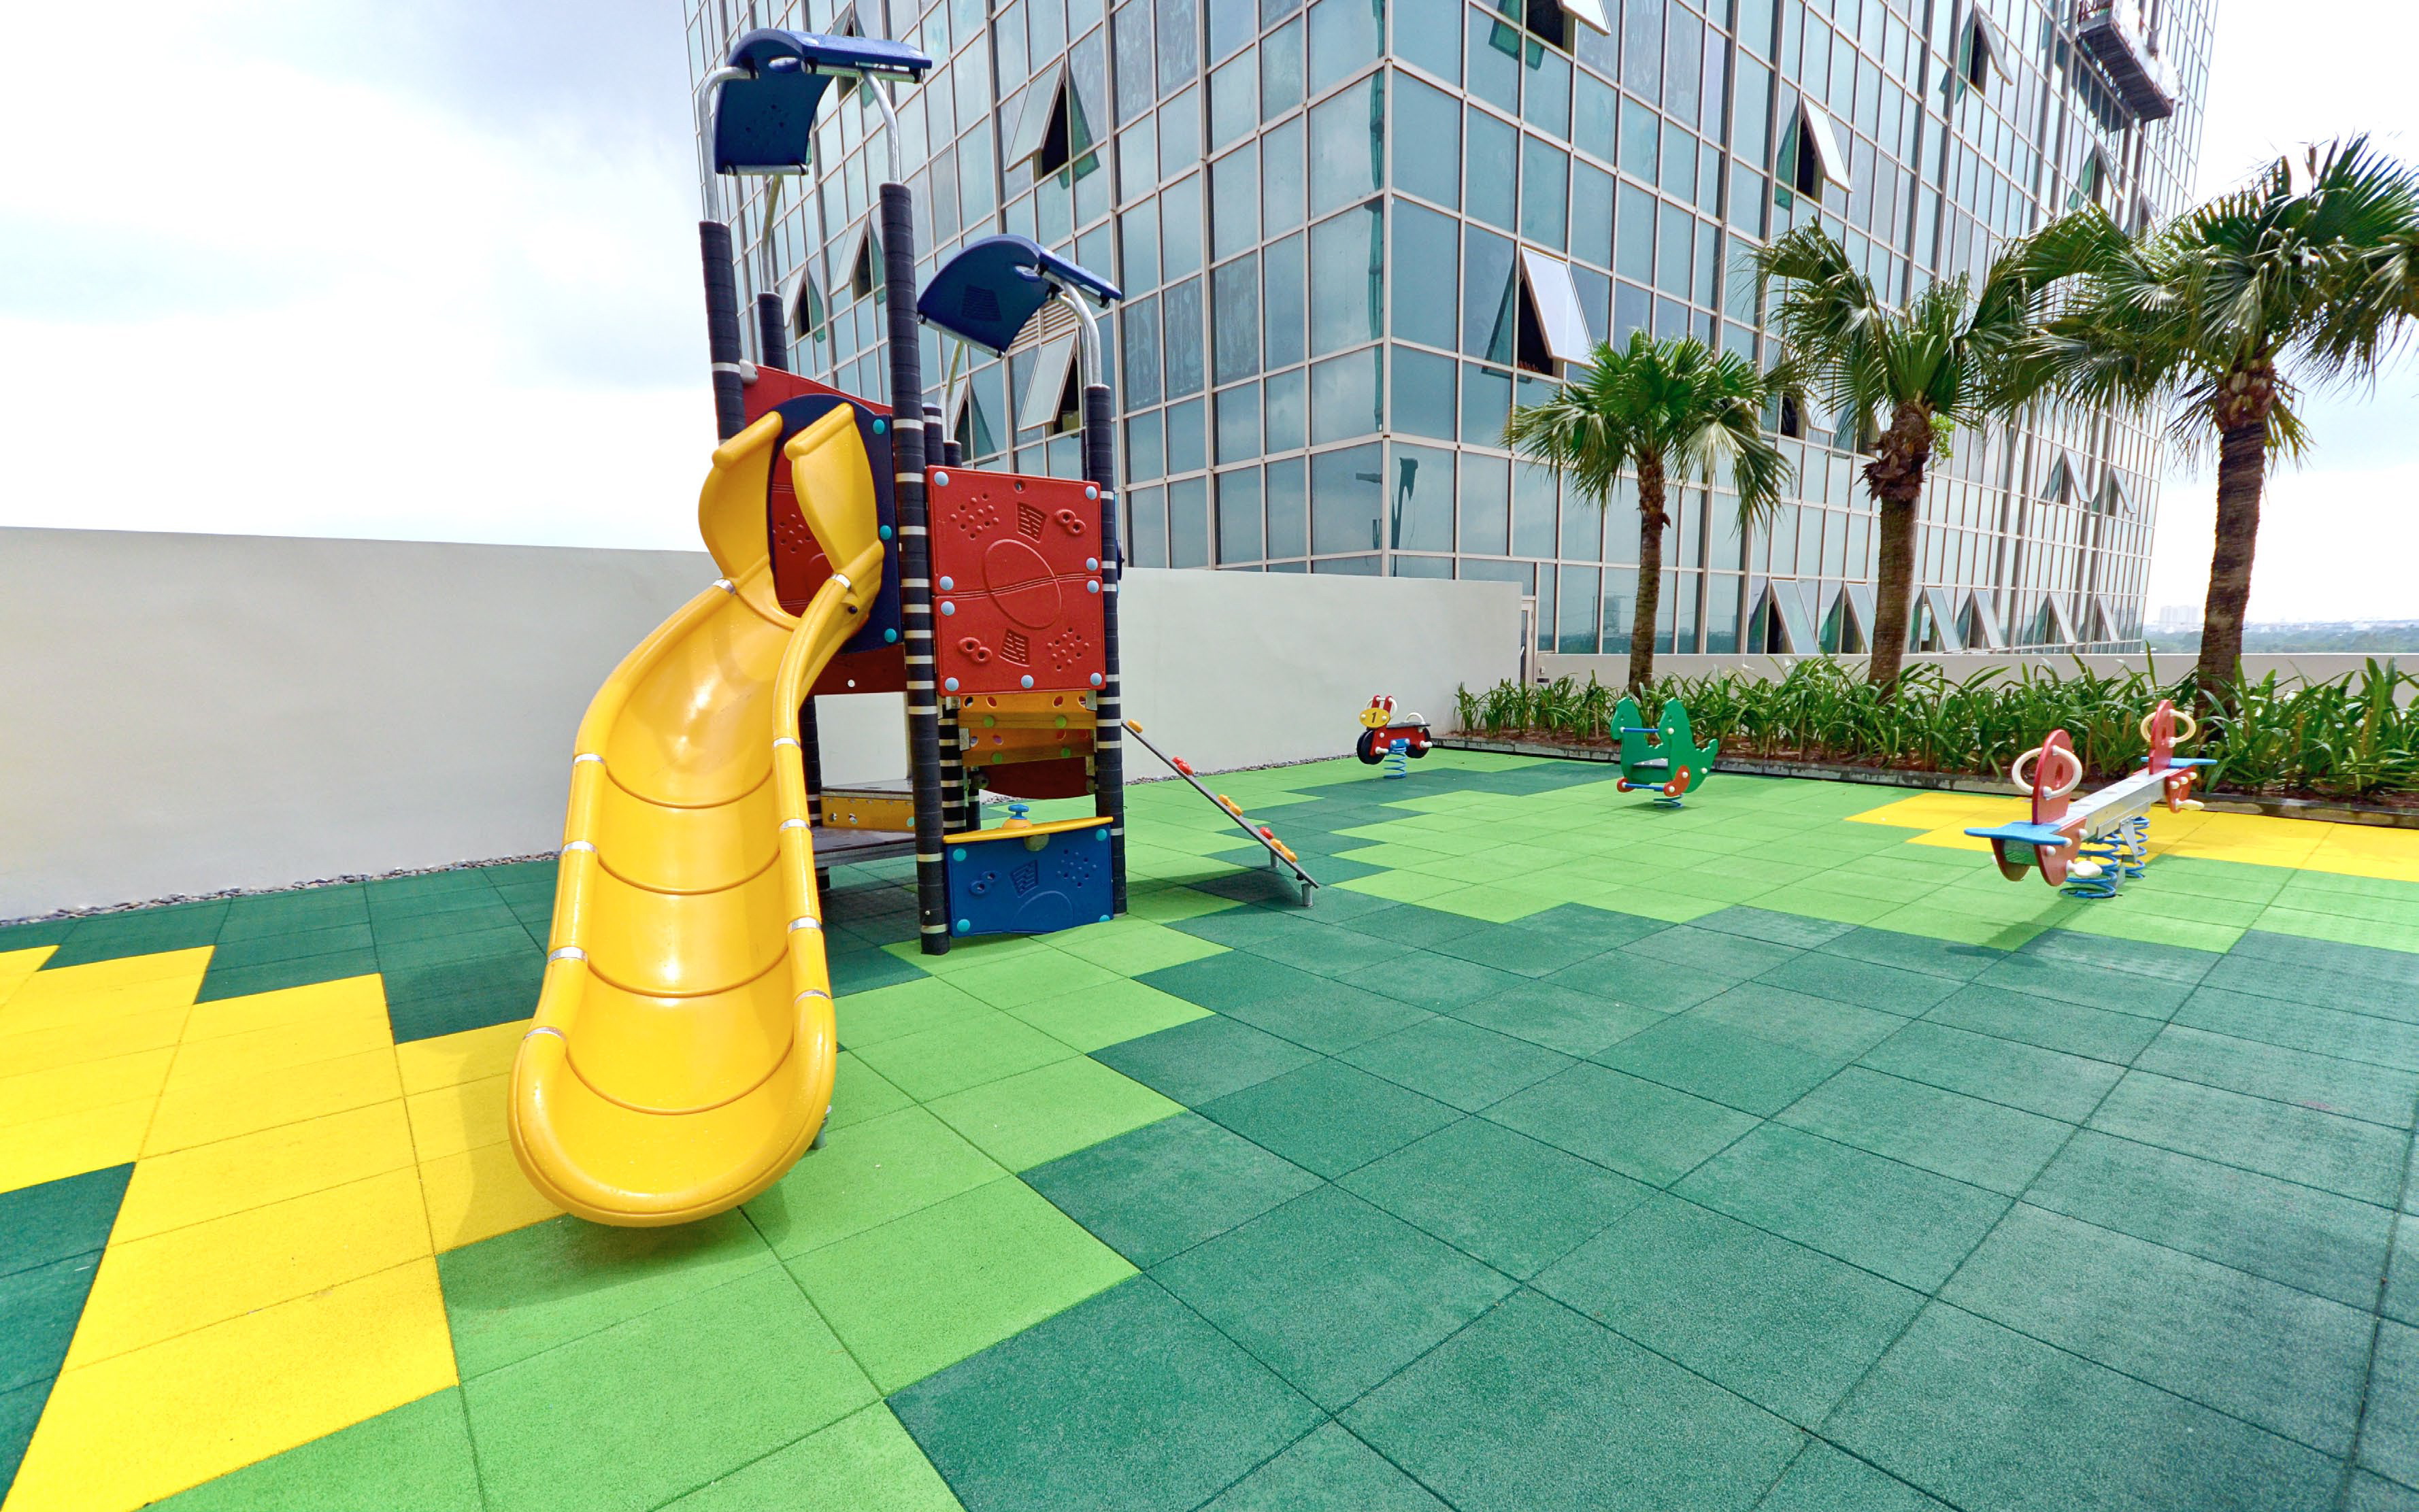 Rubber tile rubber flooring rubber mat sound insulation gym sol rubber outdoor playground rubber floor tile dailygadgetfo Images